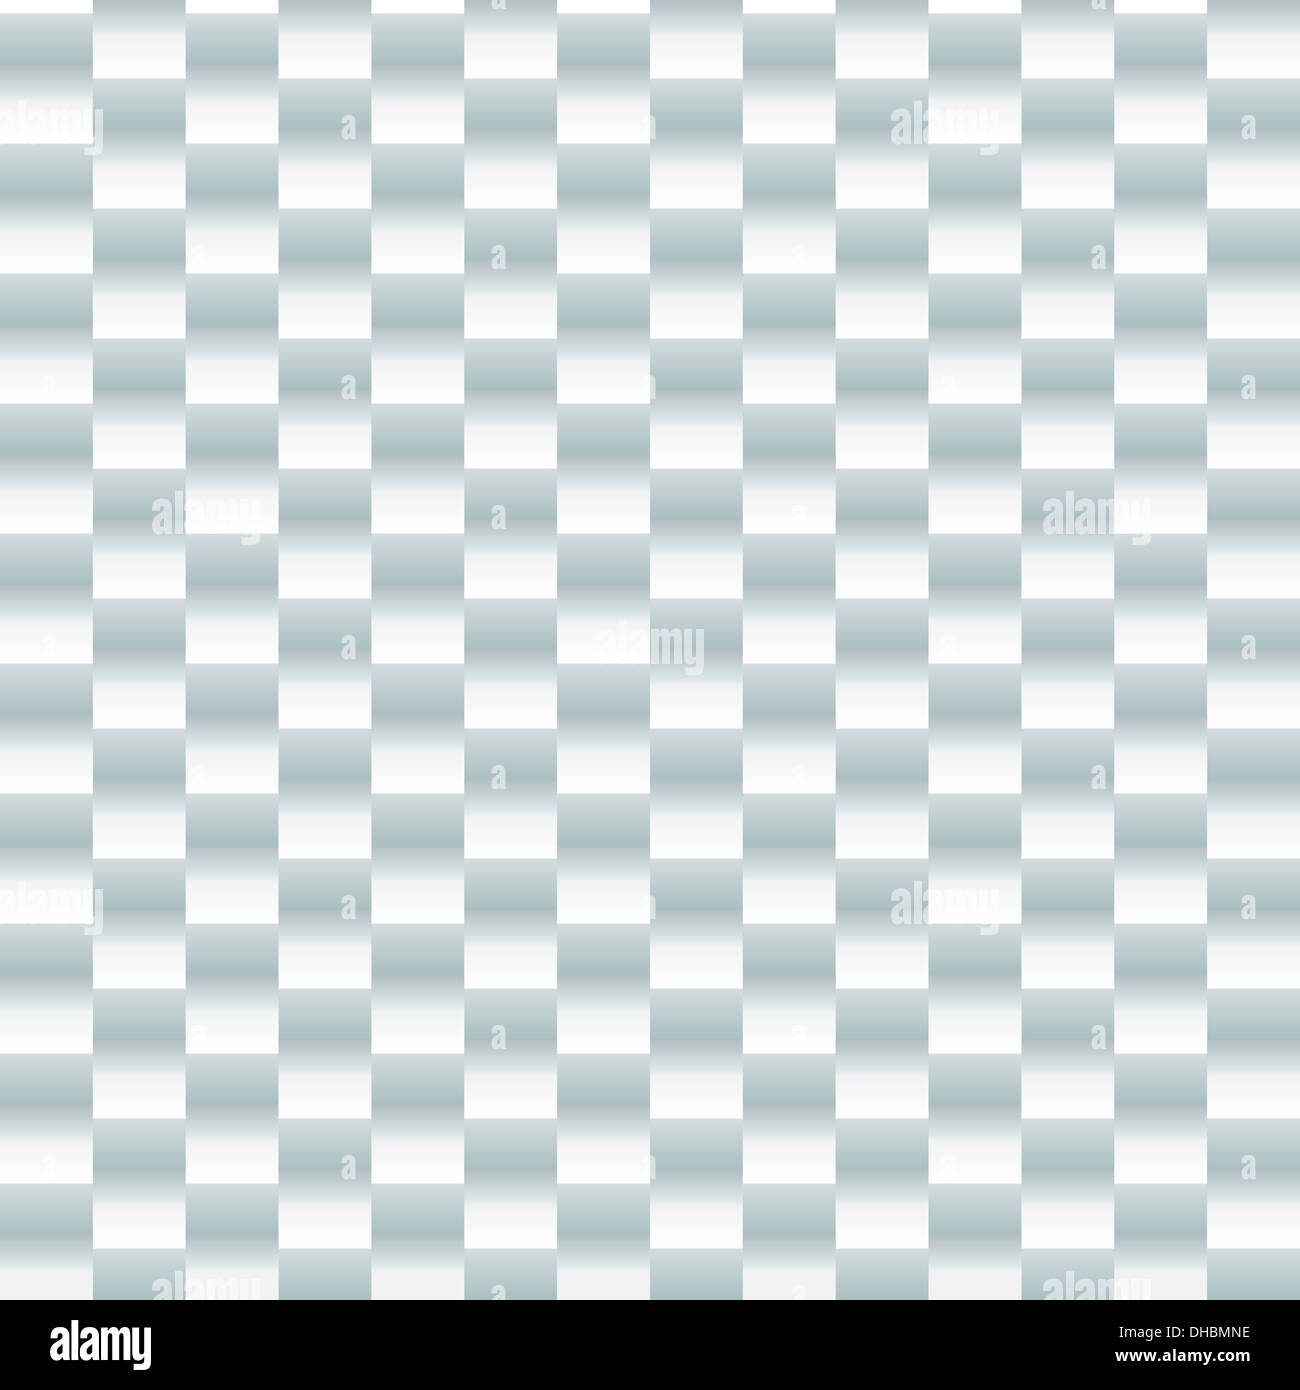 Cool 3d effect seamless pattern design ideal for tileing Stock Photo ...